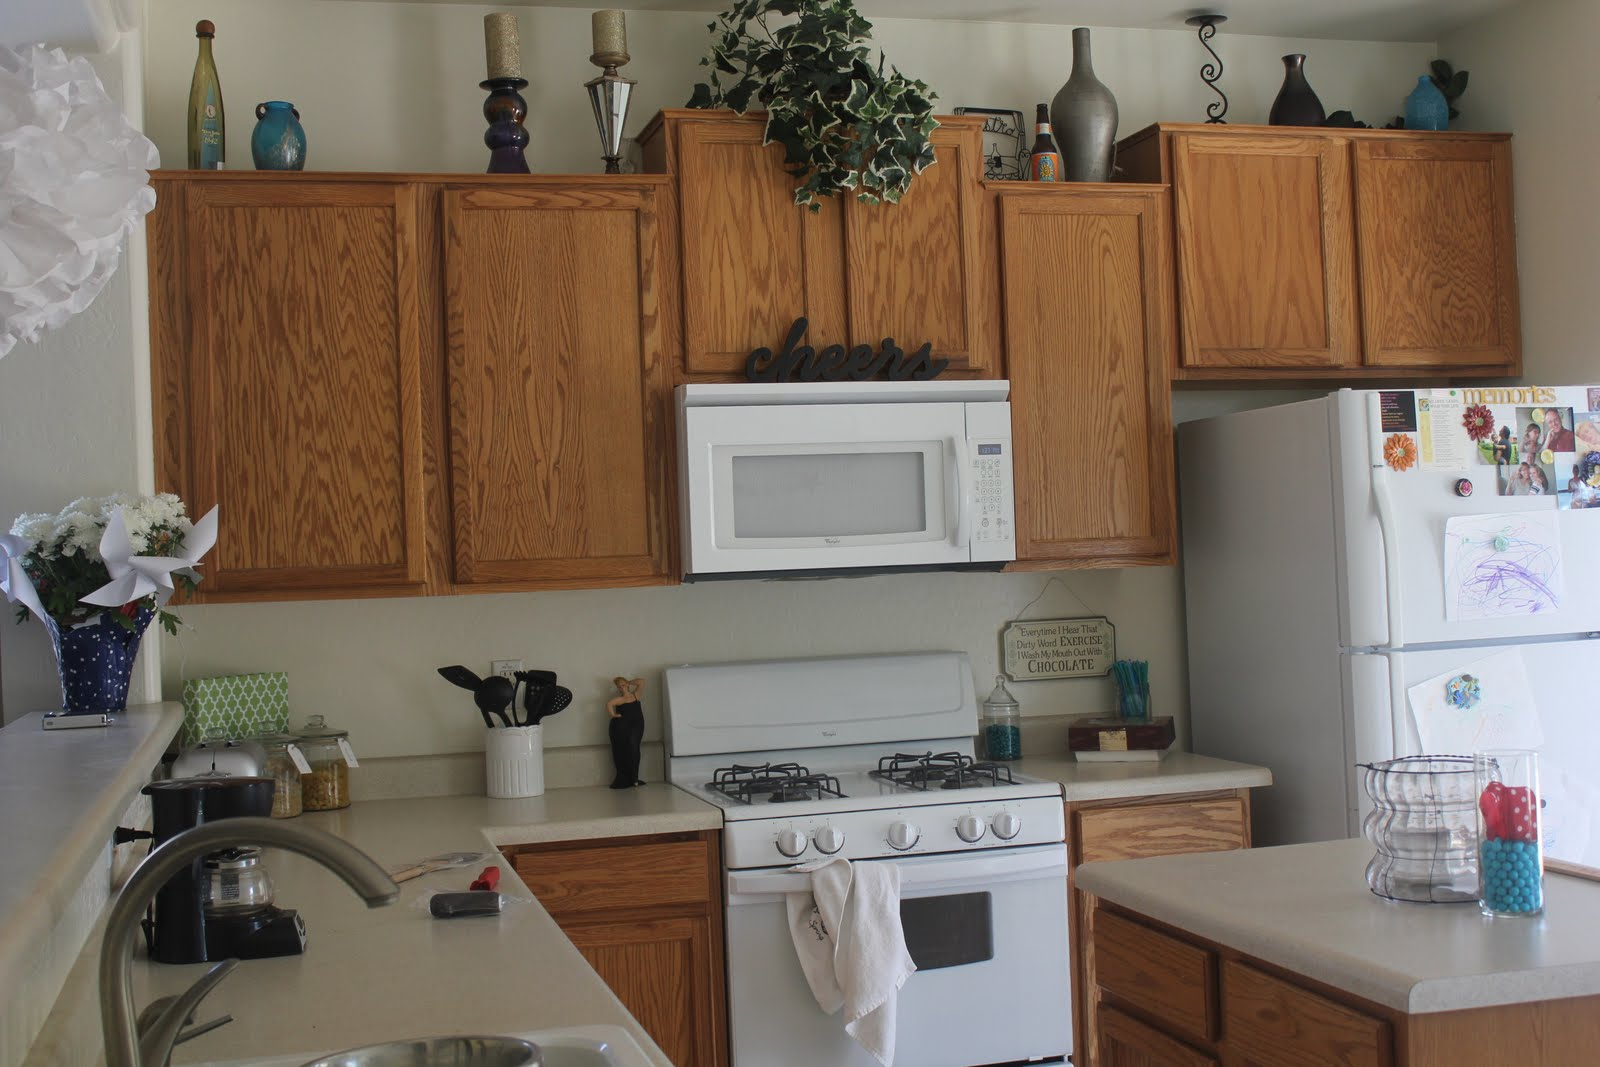 Kitchen cabinet makeover for 170 for Kitchen cabinets makeover